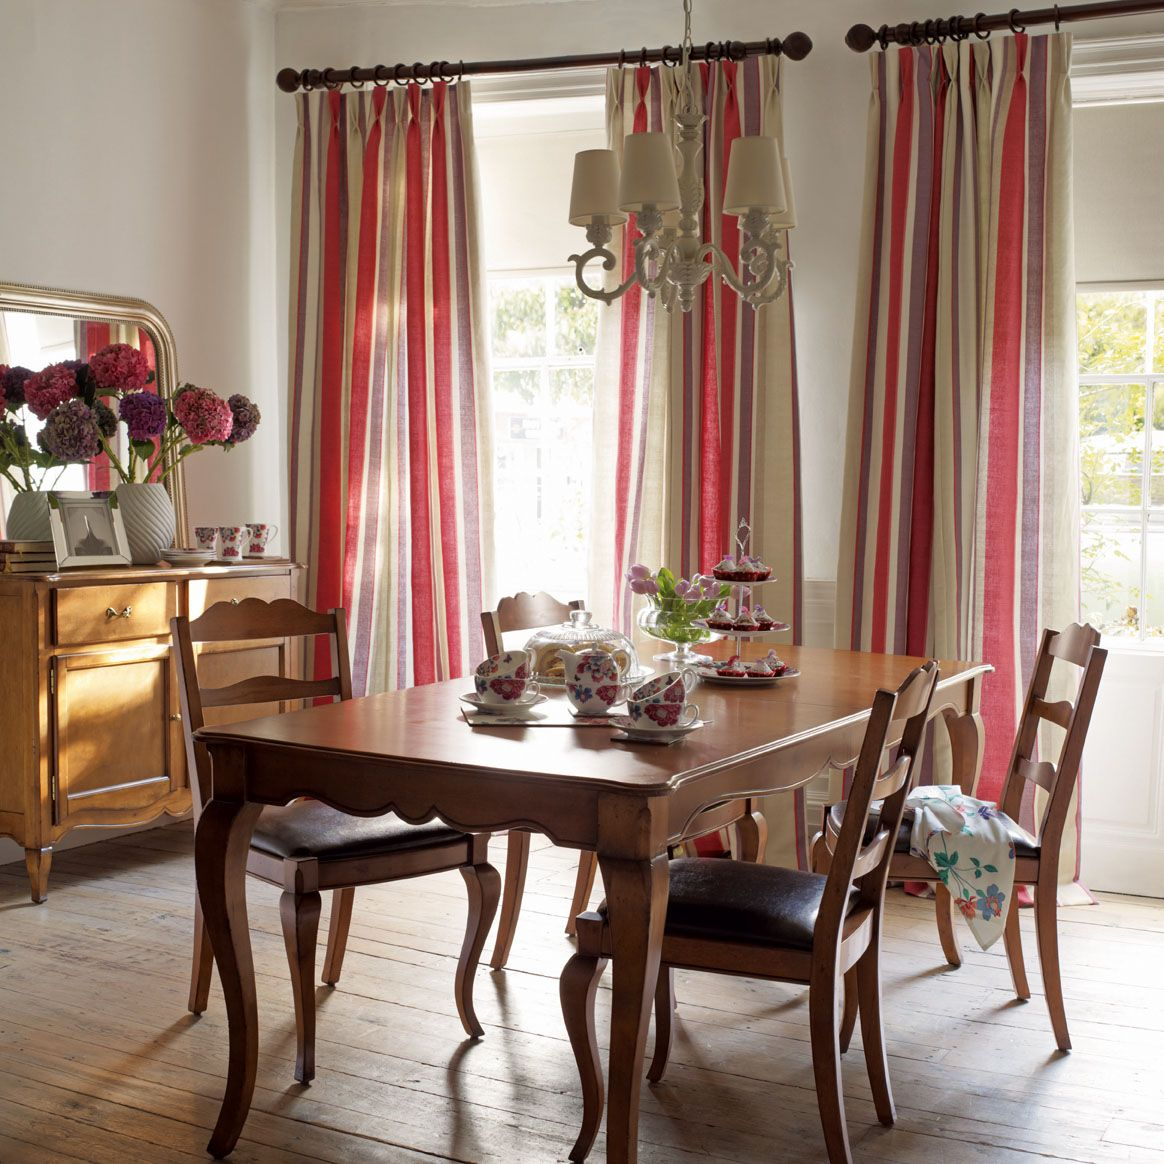 Lovely Dining Room Using Laura Ashley Eaton Stripe Linen Cotton Fabric Cranberry